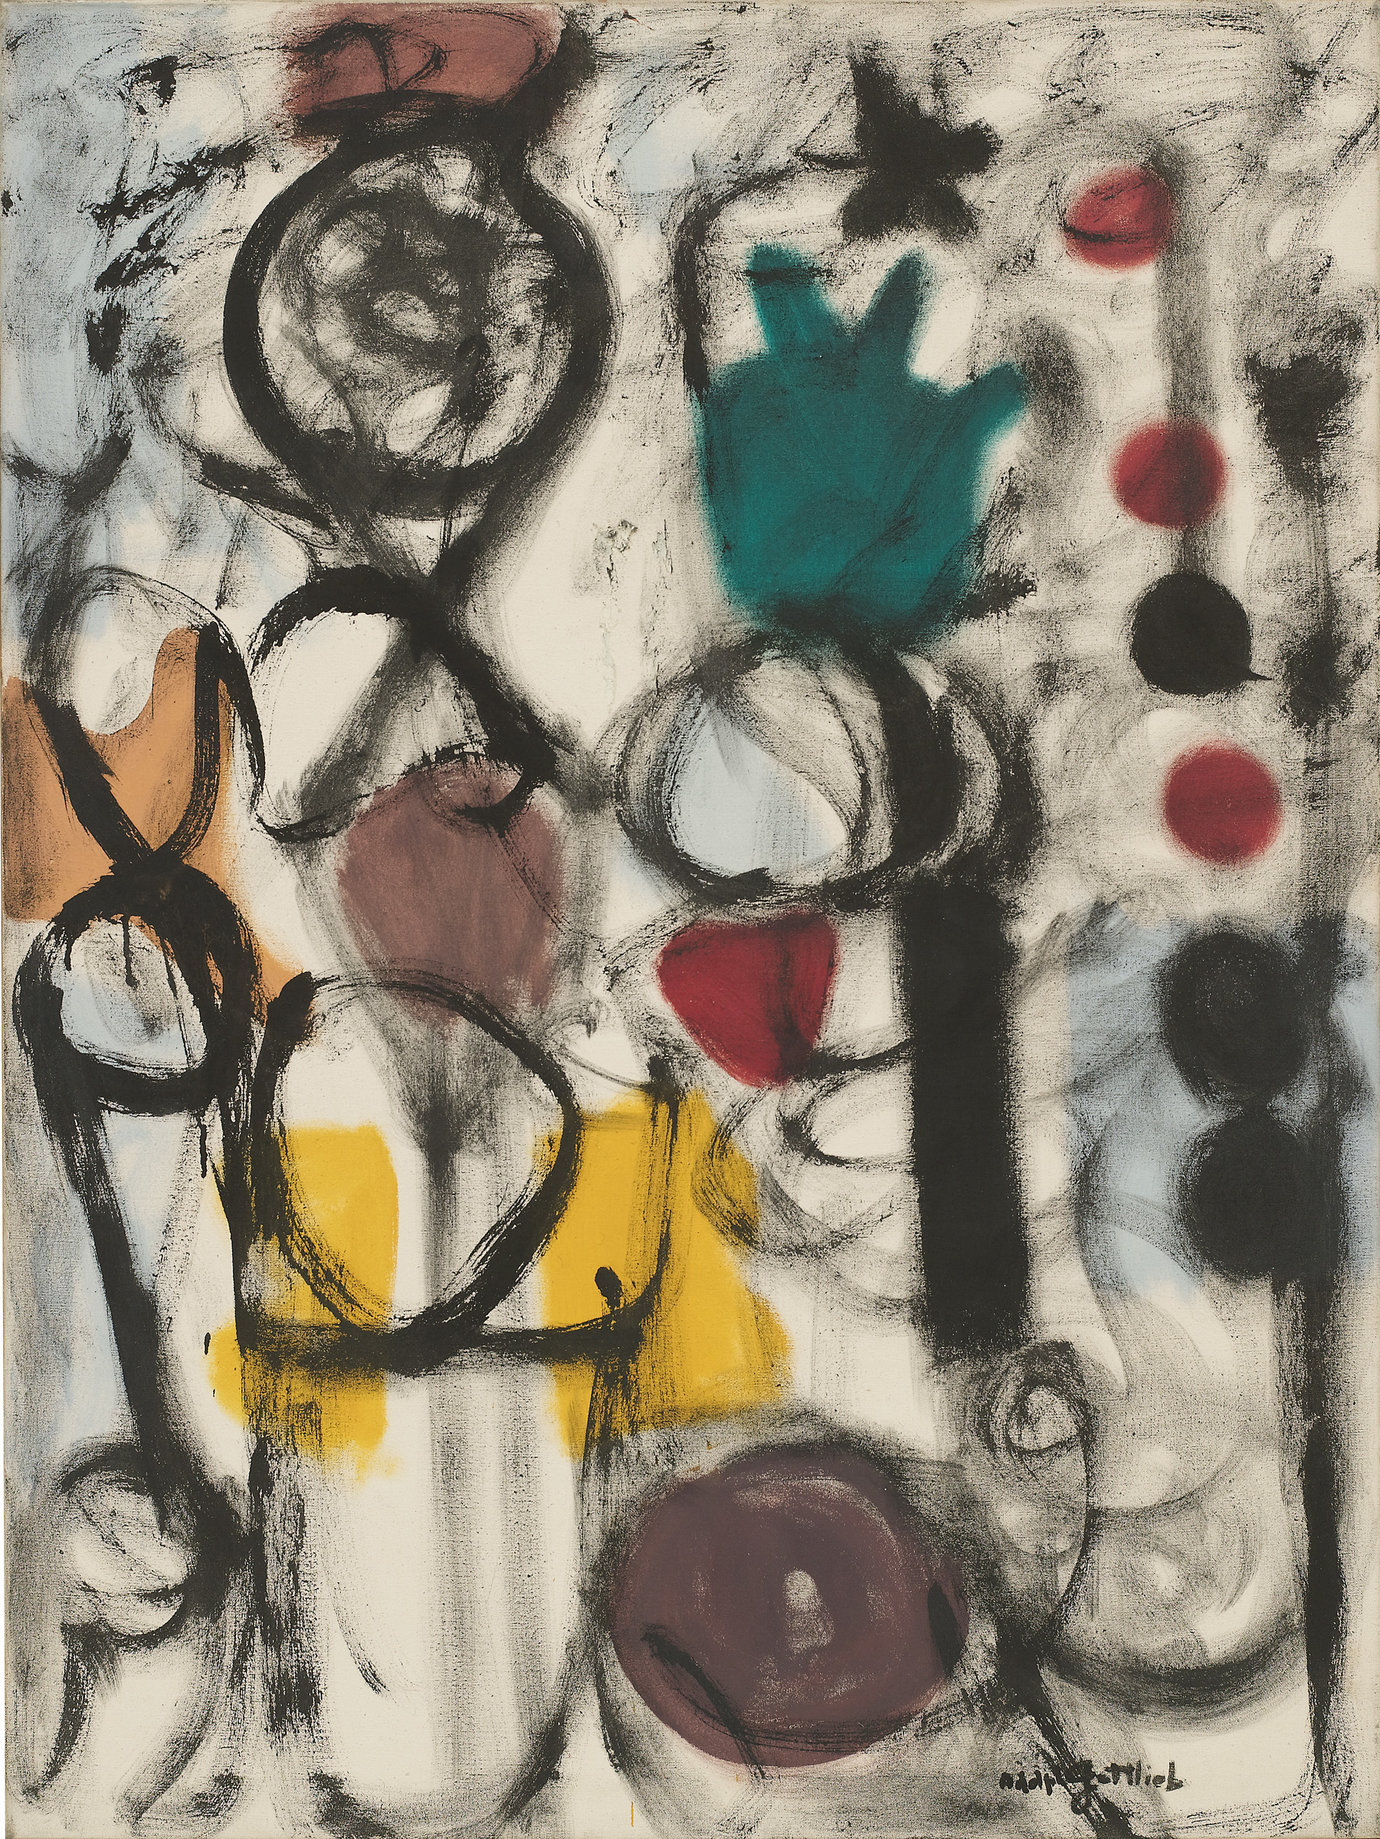 ", 1951. oil on canvas, 48"" x 36"" (121.9 cm x 91.4 cm)."